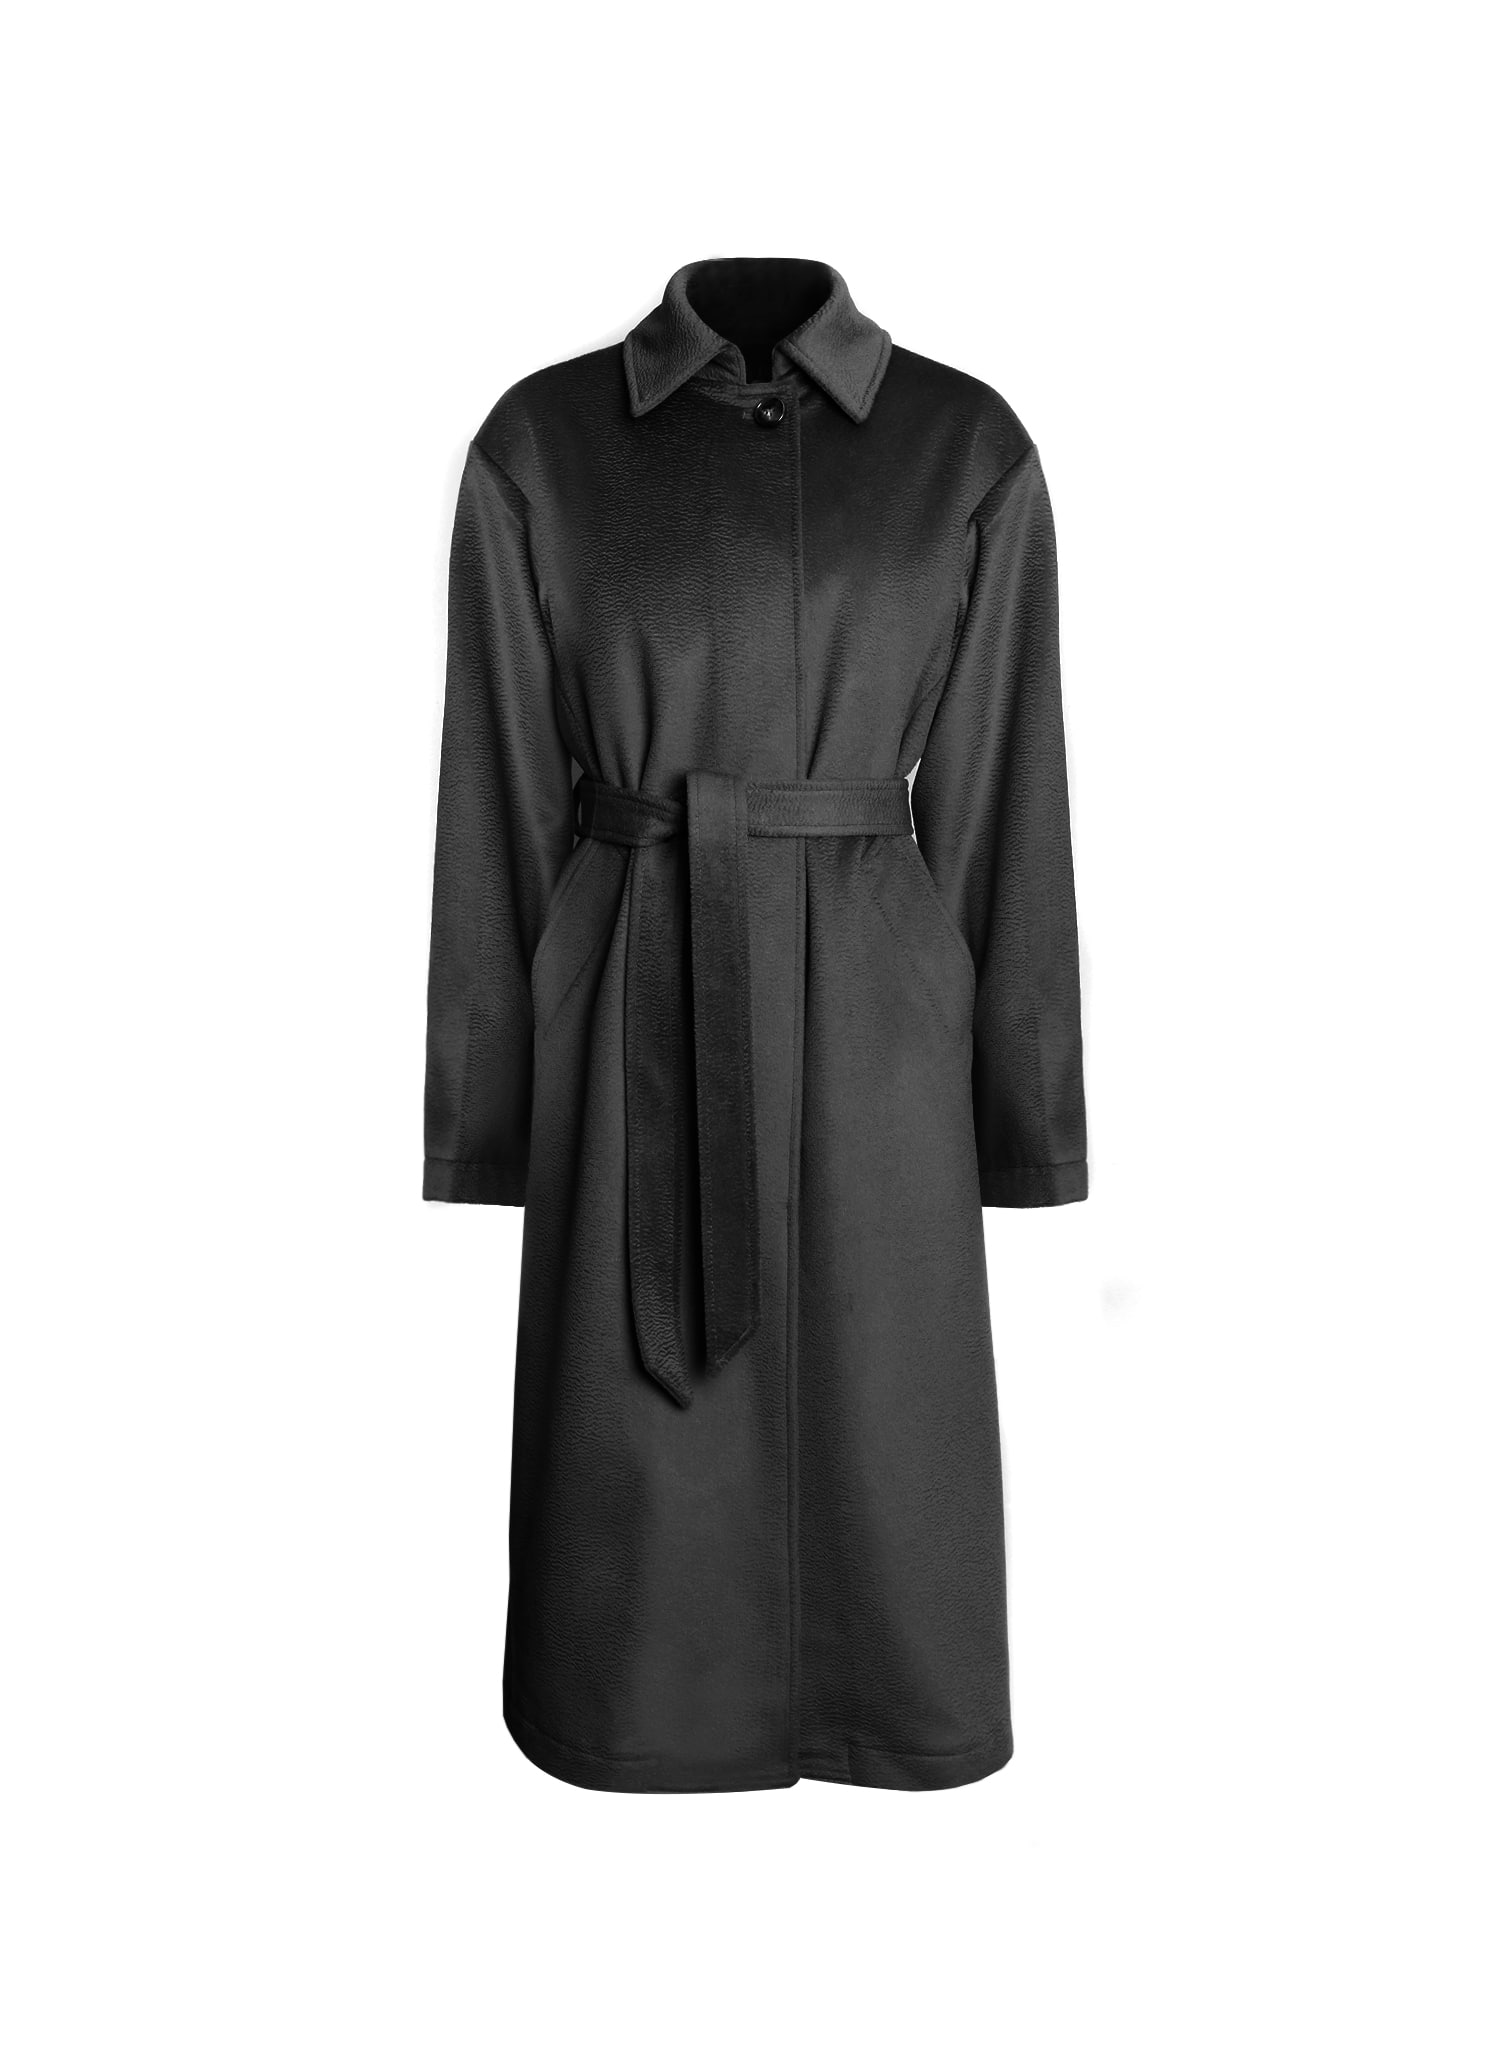 CLASSIC CASHMERE SINGLE COAT / BLACK